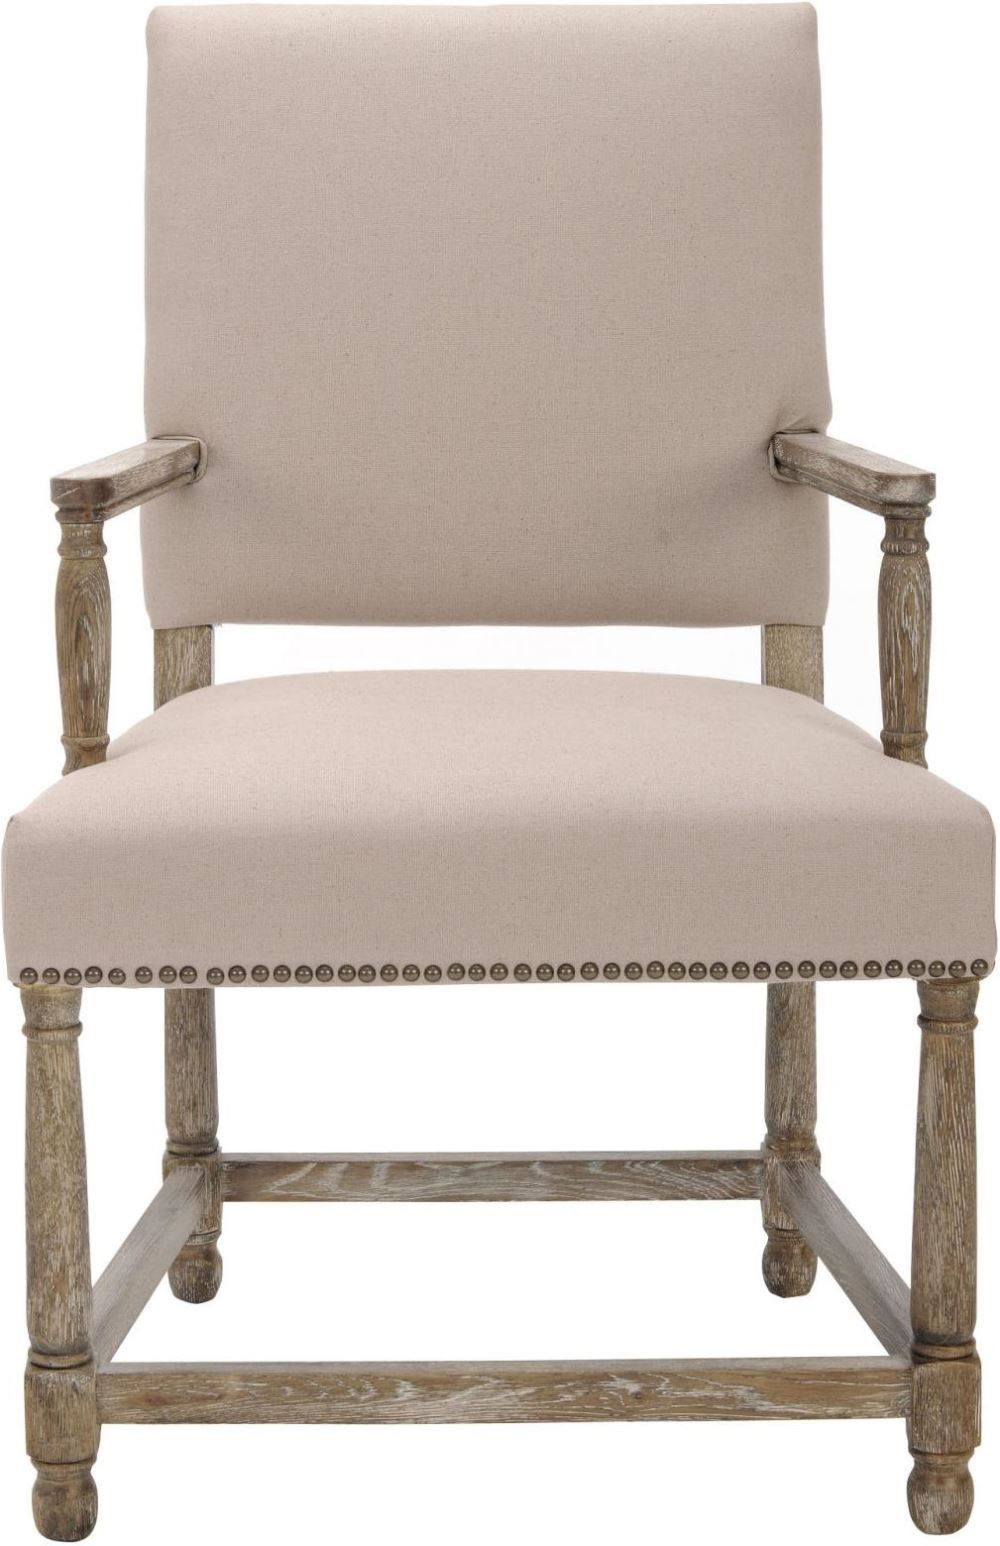 angel arm chair products upholstery furniture chair rh pinterest com au